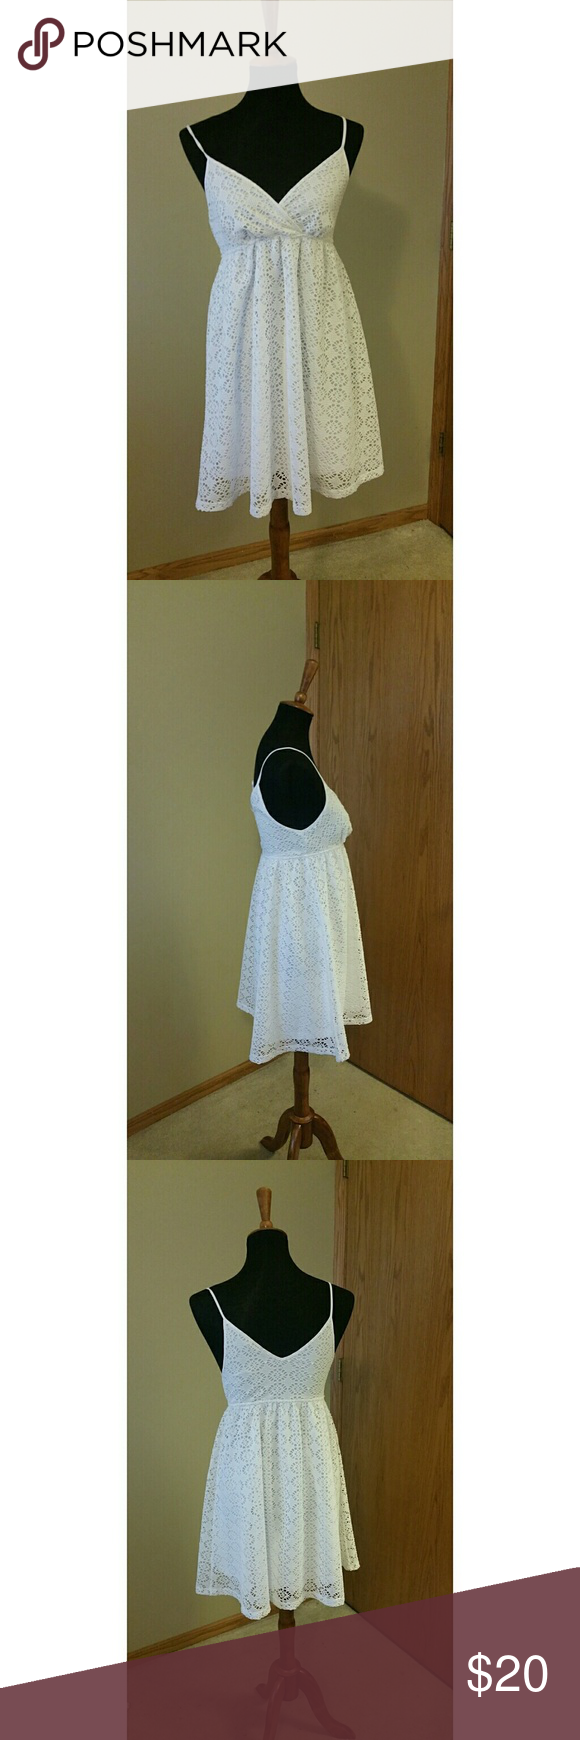 ☄SALE☄Espress white summer lace short sundress Really cute V neck summer white spaghetti strap dress from express. All over lace and lined. Excellent used condition  Let me know if you have any questions :) Express Dresses Mini #shortsundress